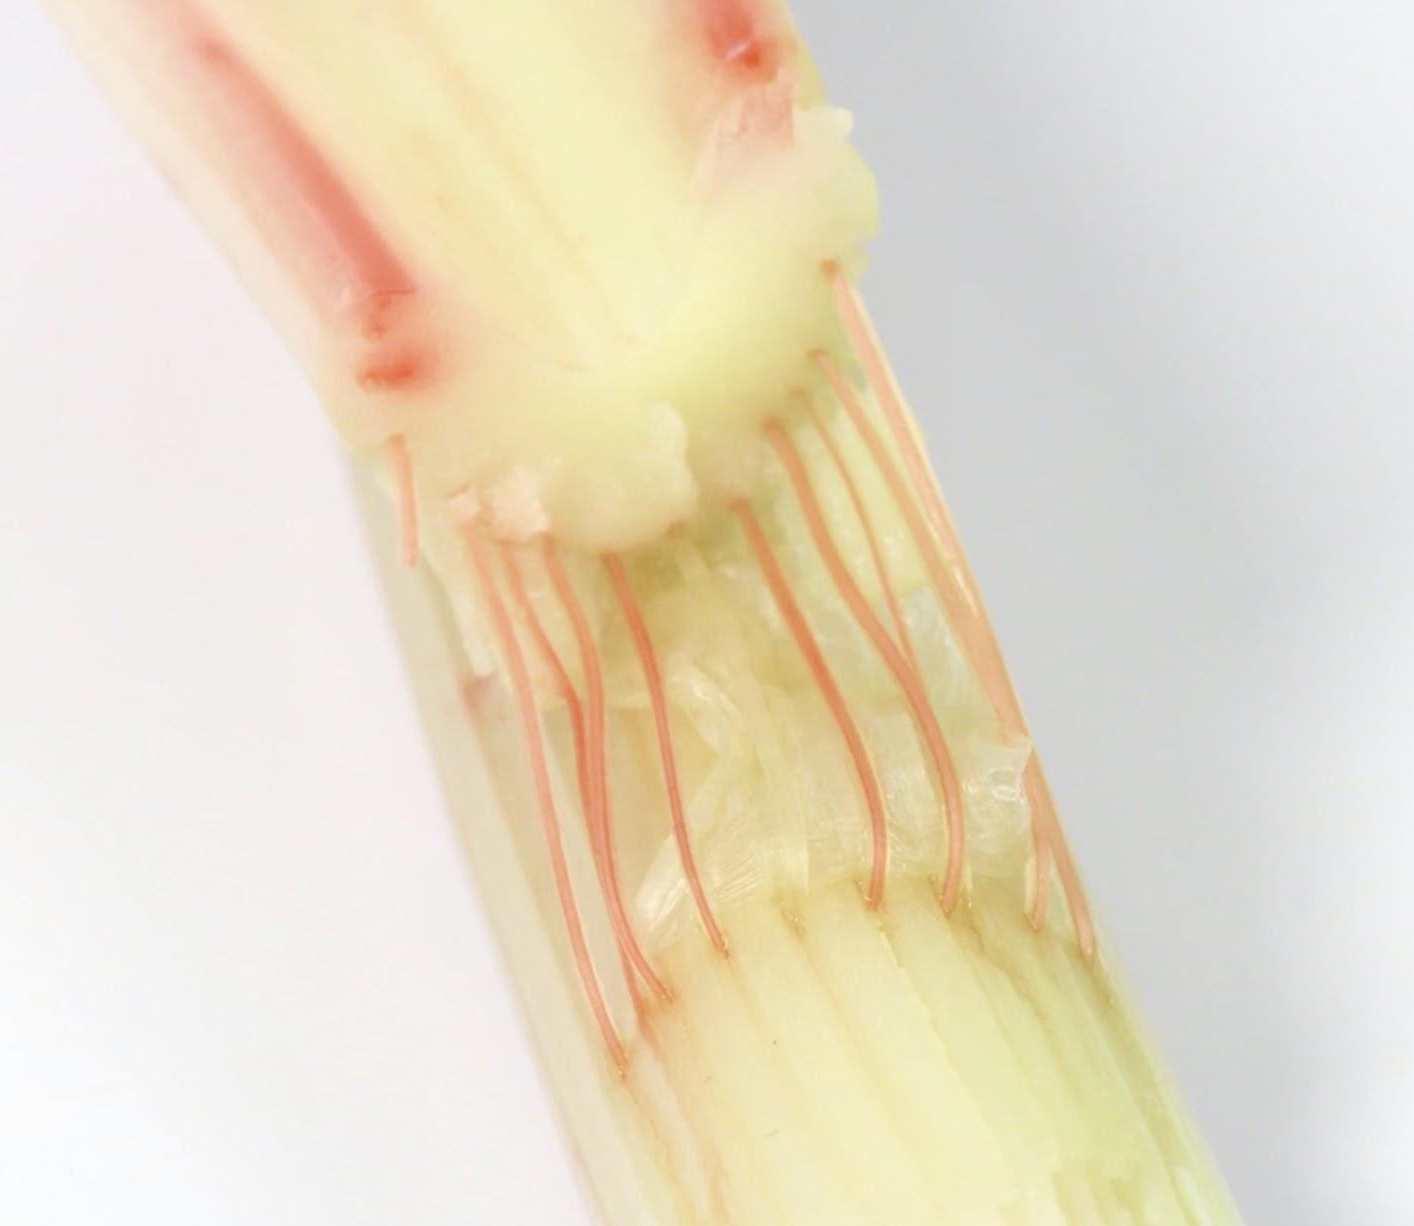 Tube-shaped cells inside the plant